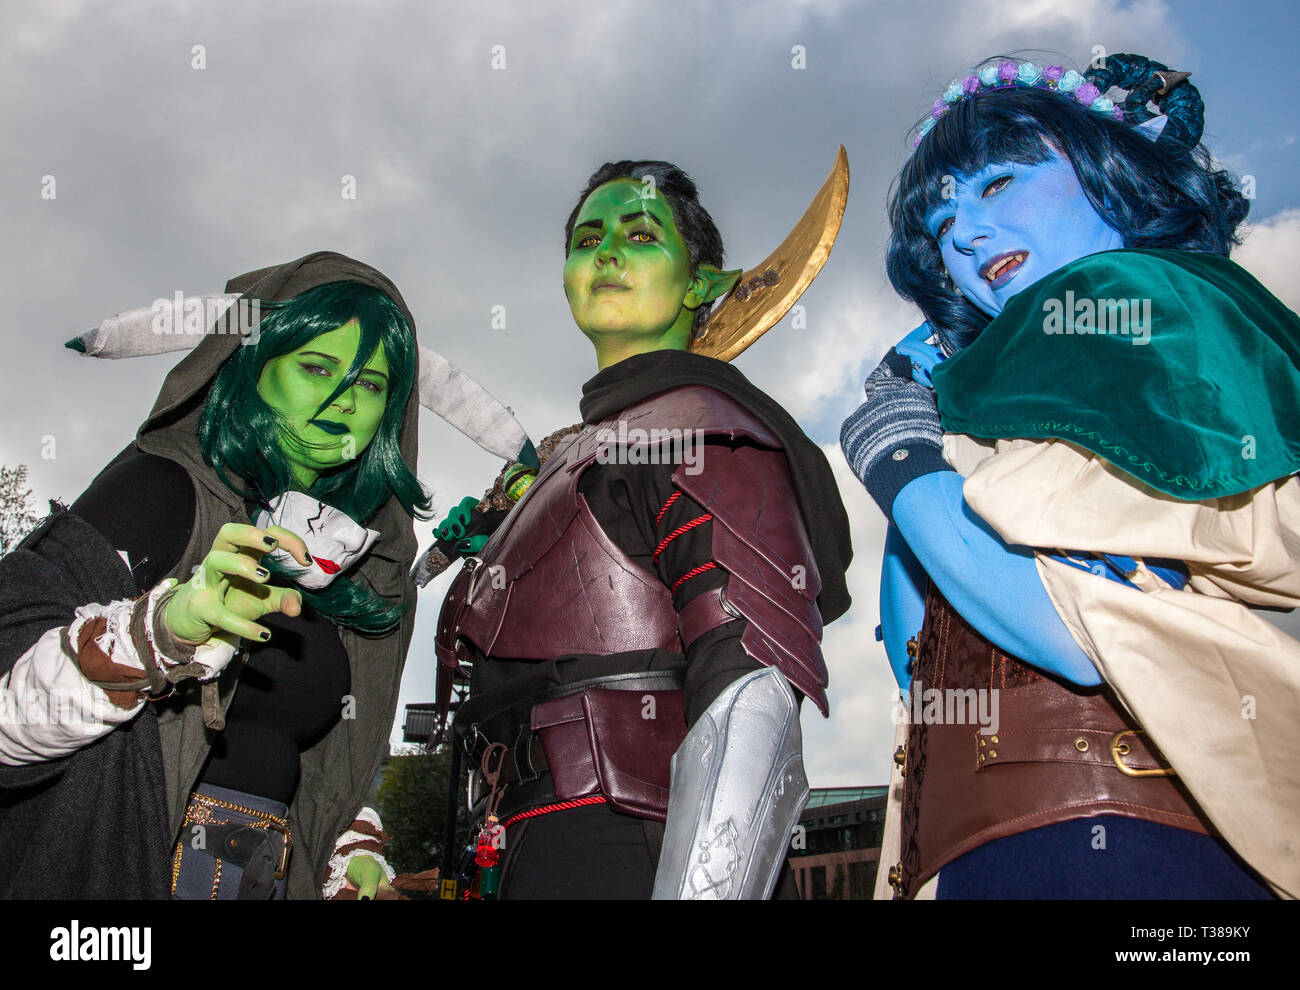 Cork City, Cork, Ireland. 07th April, 2019.  Matylda Gruszewska AKA Hakkcosplay, Emma Babington AKA Shadow Sionnach and Chloe Leahy AKA Coschloo who attended the Kaizoku-Con, Anime, Gaming and Sci-Fi Convention over the weekend  at University College Cork, Ireland Credit: David Creedon/Alamy Live News - Stock Image